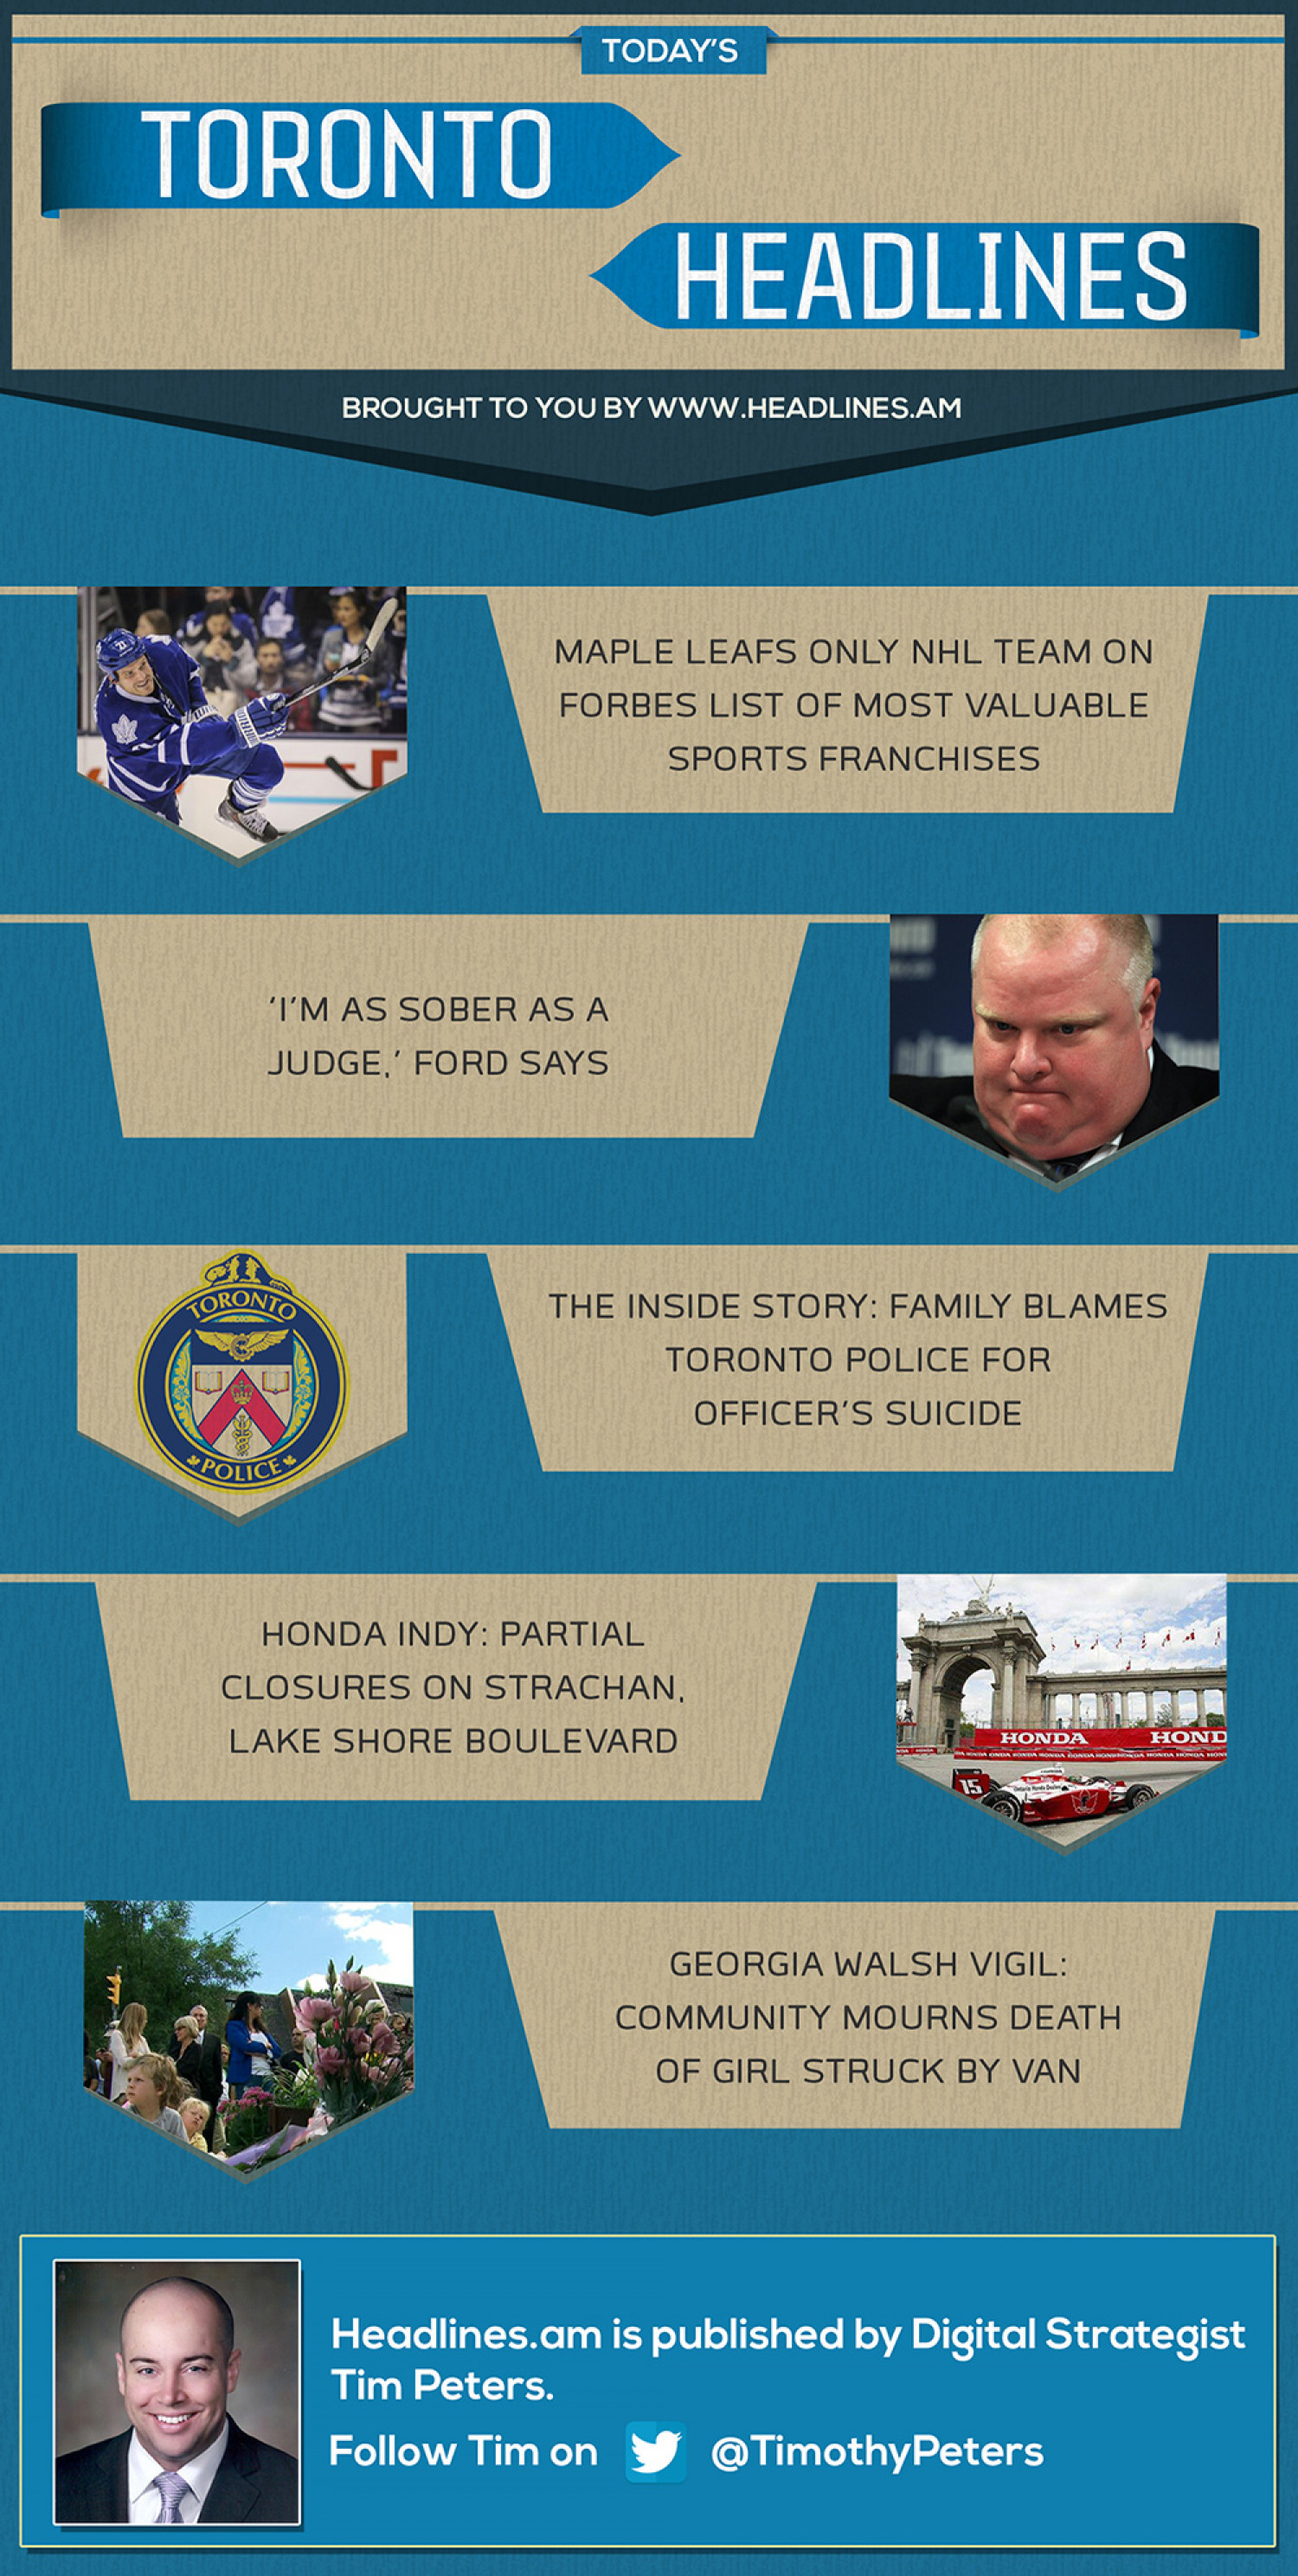 TORONTO NEWS HEADLINES -July 18, 2014 Infographic